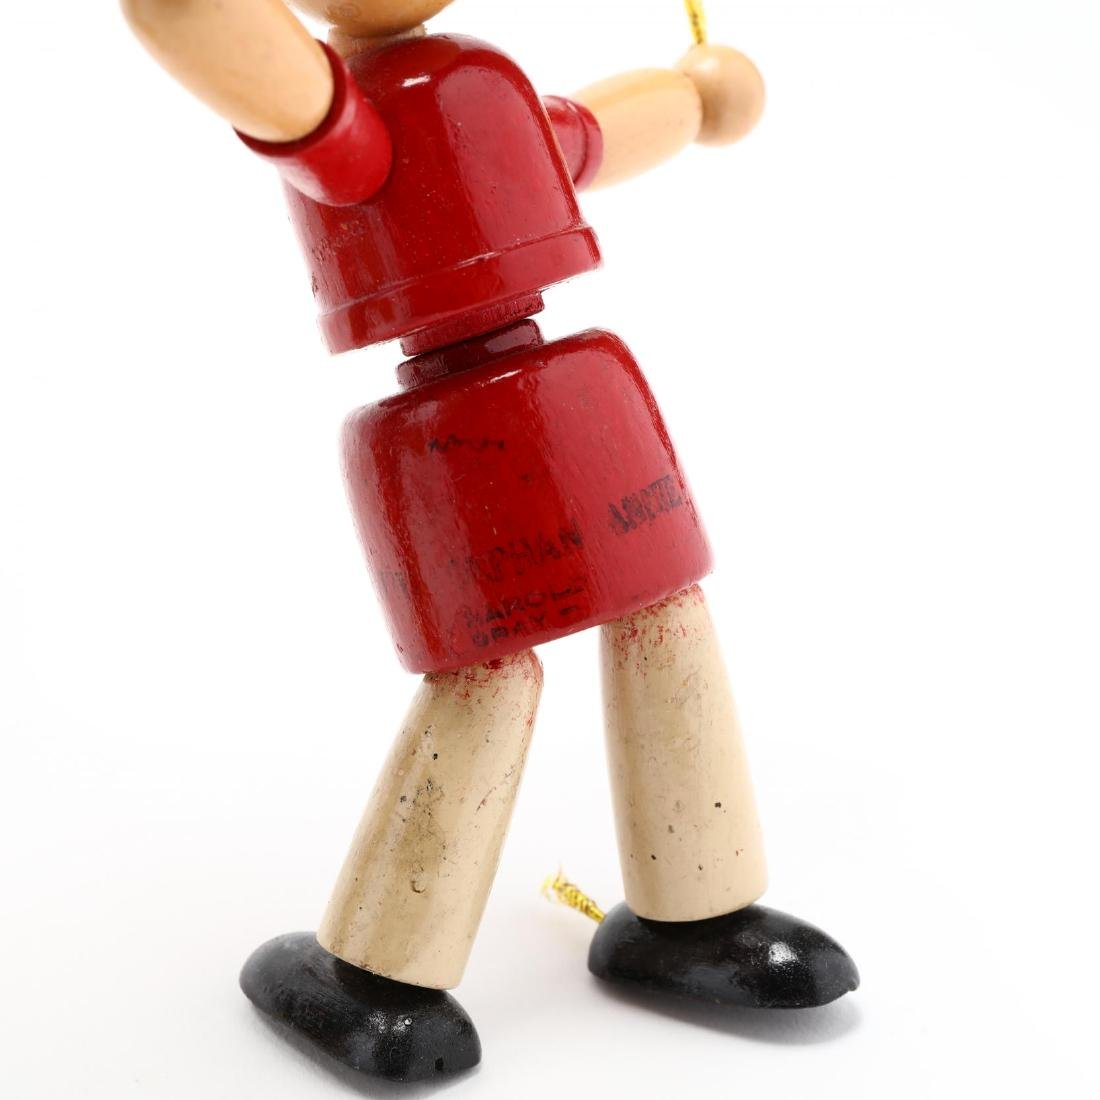 A Group of Articulated Wooden Toys - 8